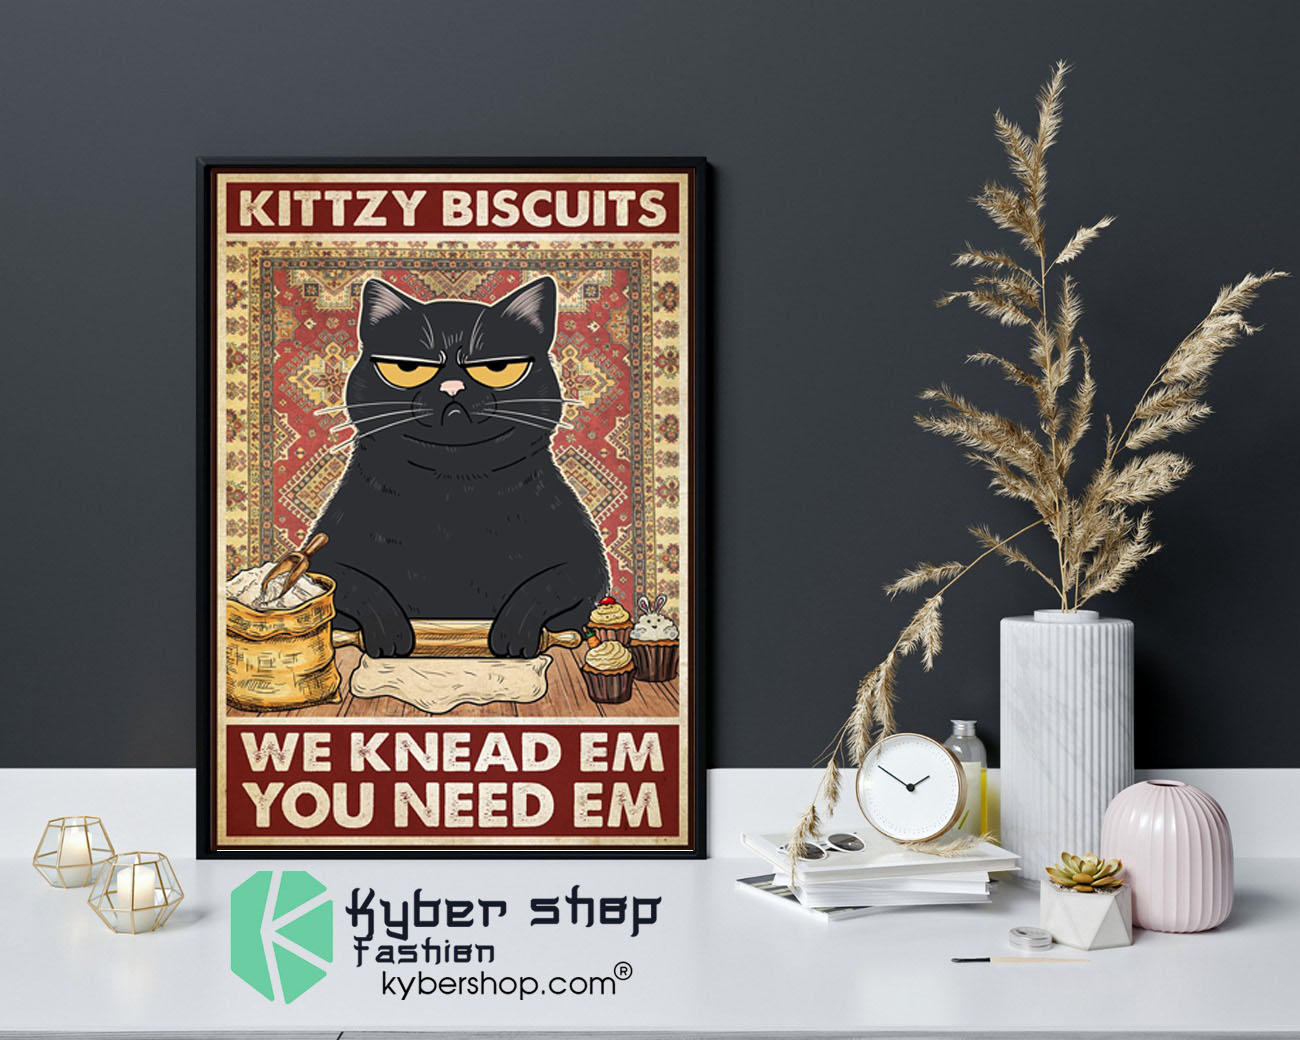 Baker Kittzy biscuits we knead em you need em poster9